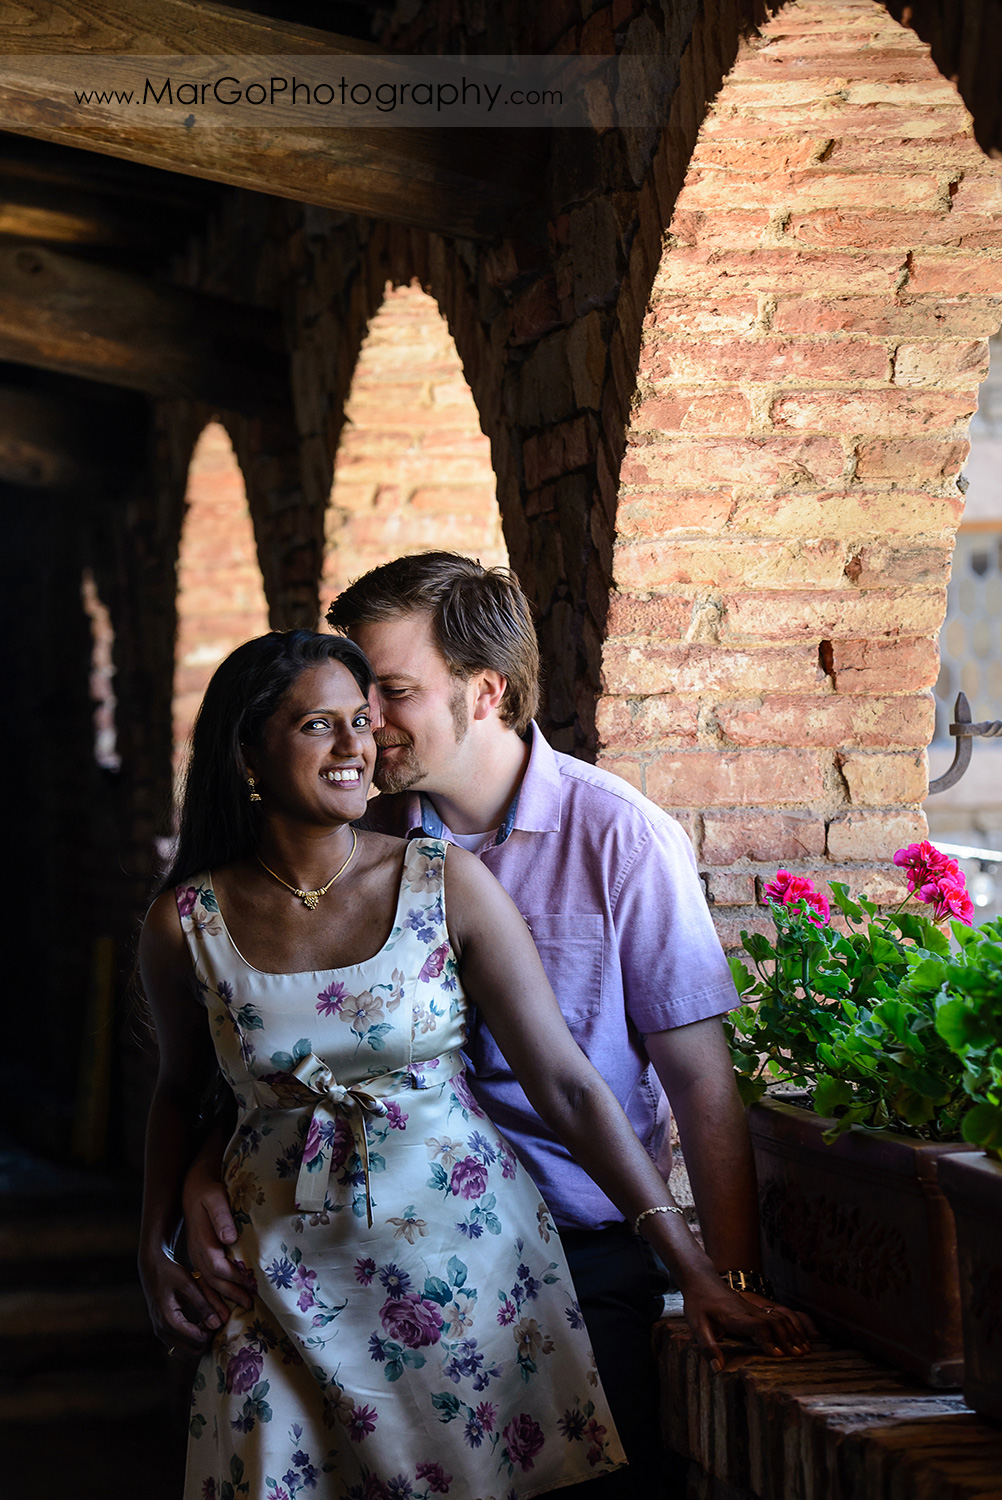 portrait of man in pink shirt kissing Indian woman in flower dress looking into camera during engagement session at Castello di Amorosa in Calistoga